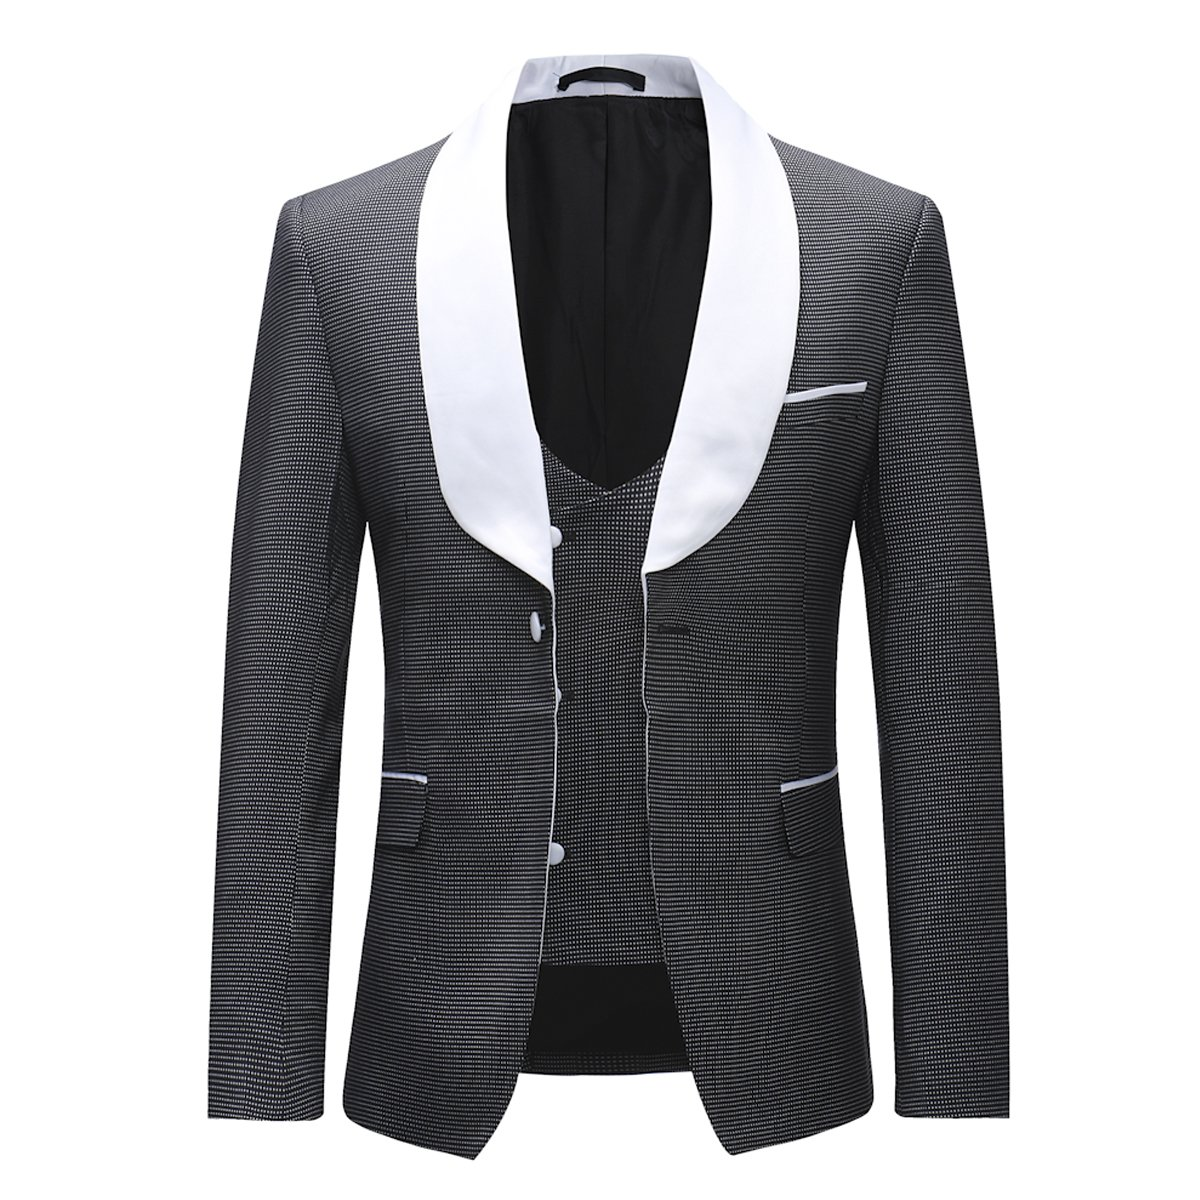 054dcef4a7423 Top 10 wholesale Black Waistcoat And Trousers - Chinabrands.com